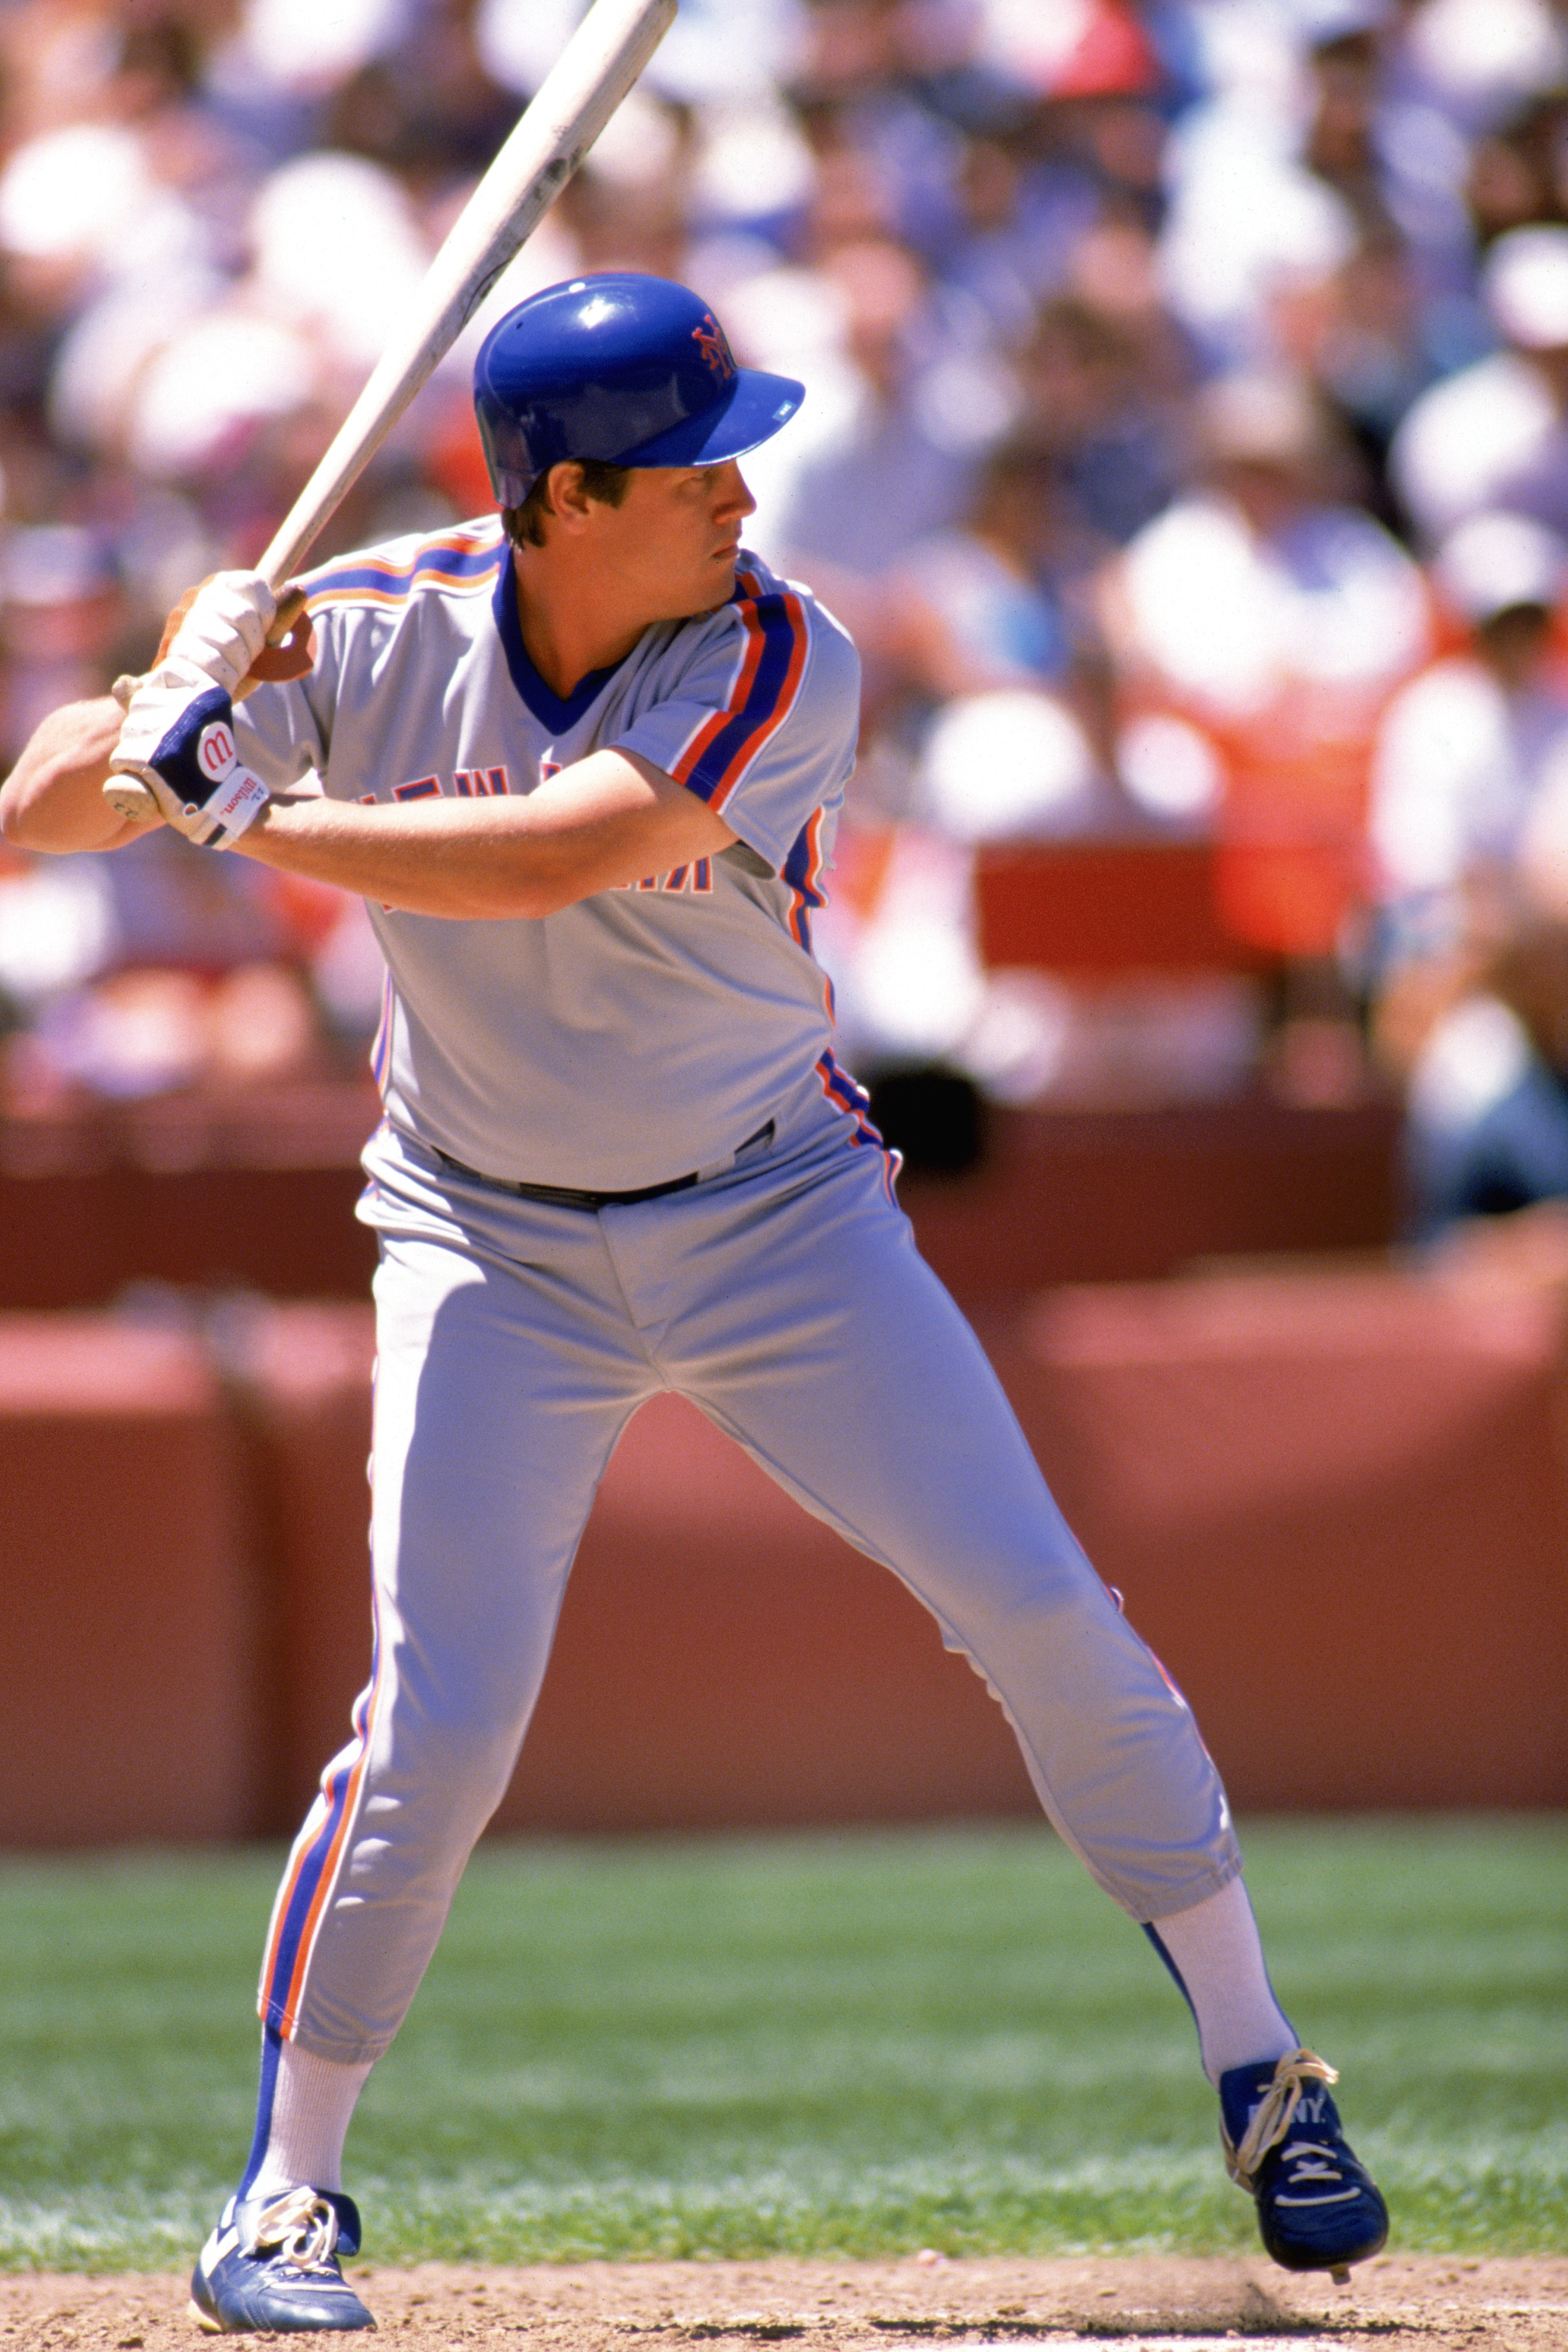 1989:  Kevin McReynolds of the New York Mets stands ready at bat during a game in the 1989 season. (Photo by: Otto Greule Jr/Getty Images)